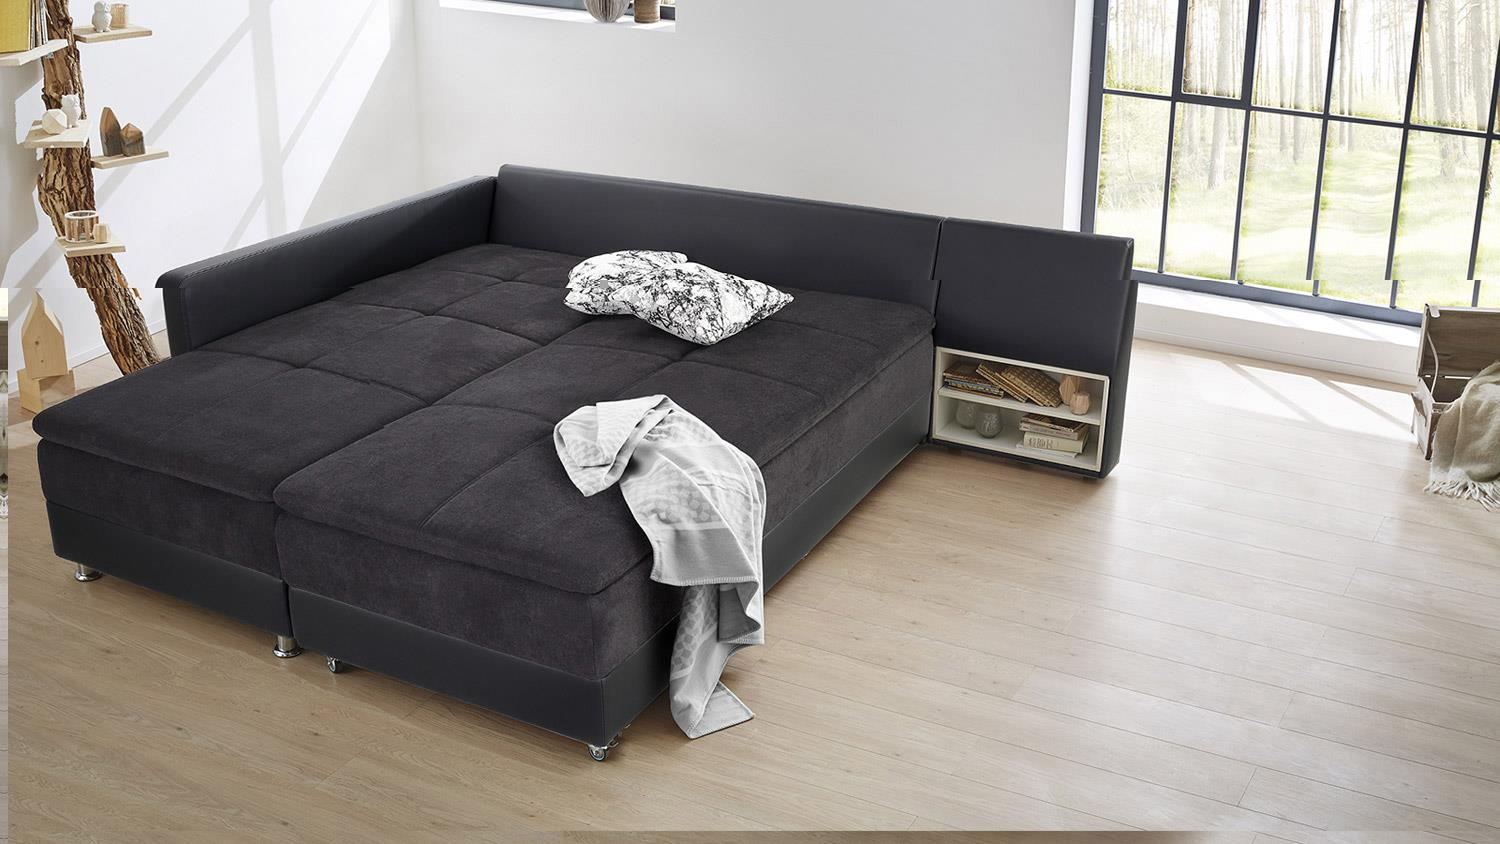 wohnlandschaft rechts modena ecksofa sofa bett in schwarz mit nako. Black Bedroom Furniture Sets. Home Design Ideas